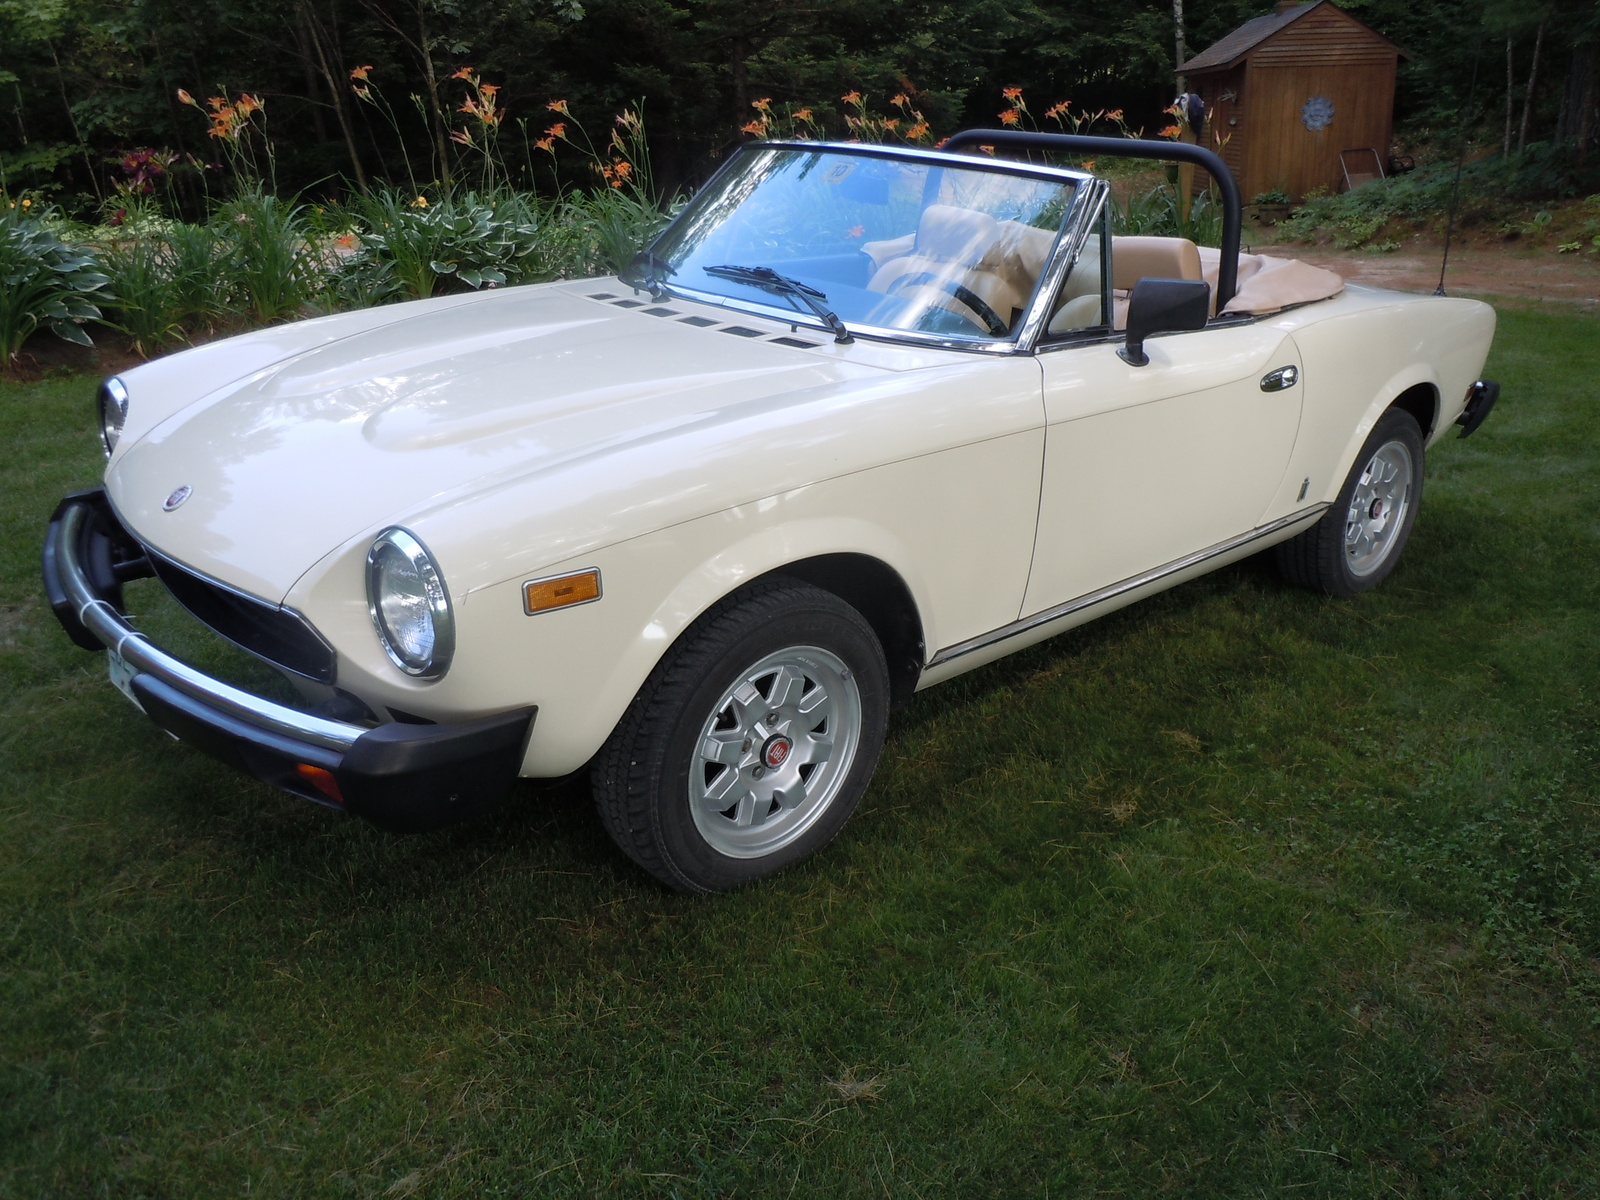 1982 Fiat 124 Spider Pictures C14105 pi36355888 on 1969 alfa romeo spider